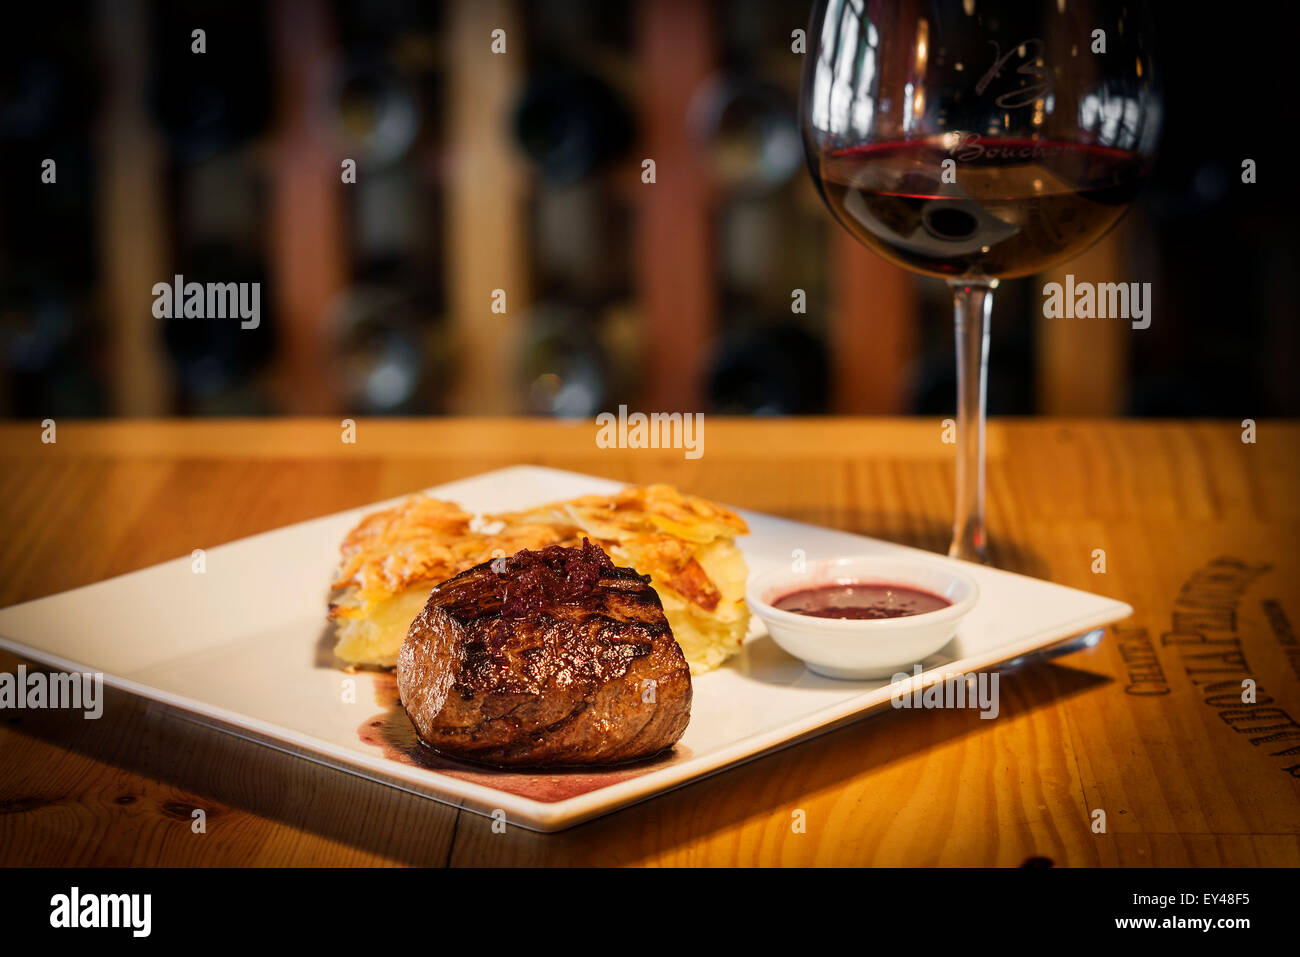 steak with potato and cheese bake - Stock Image